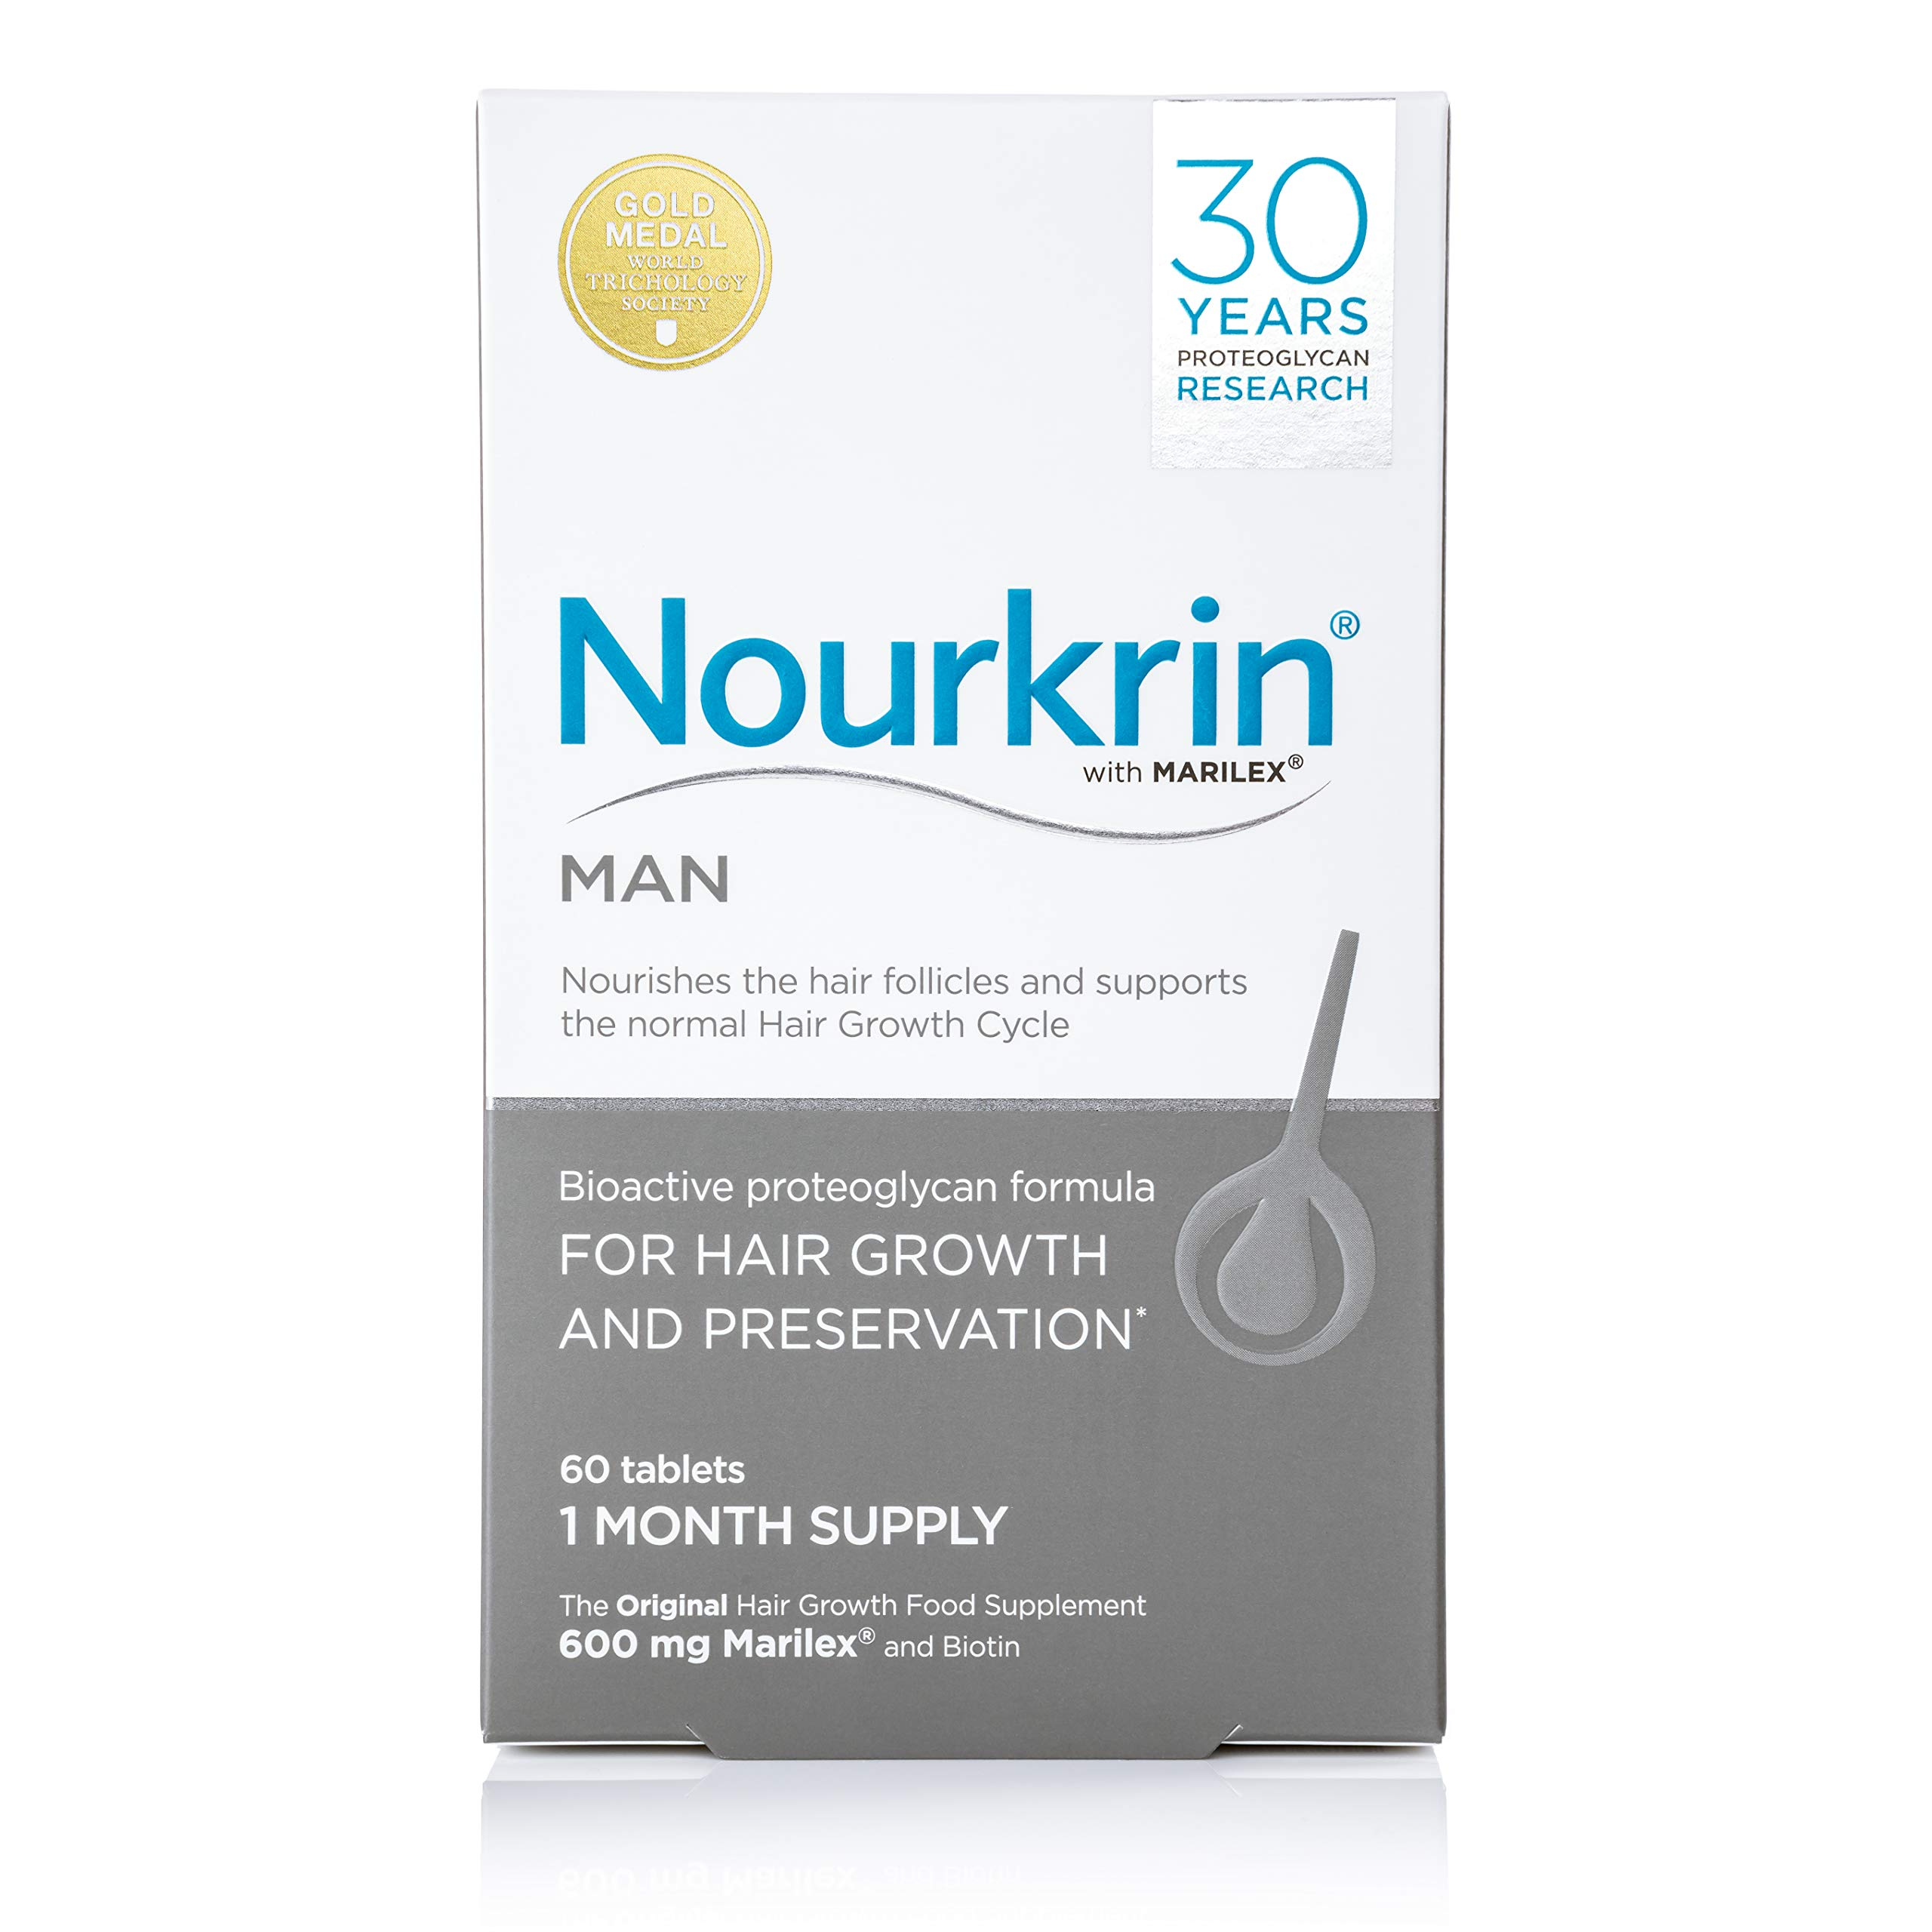 Nourkrin Daily Supplement for Man - Pack of 60